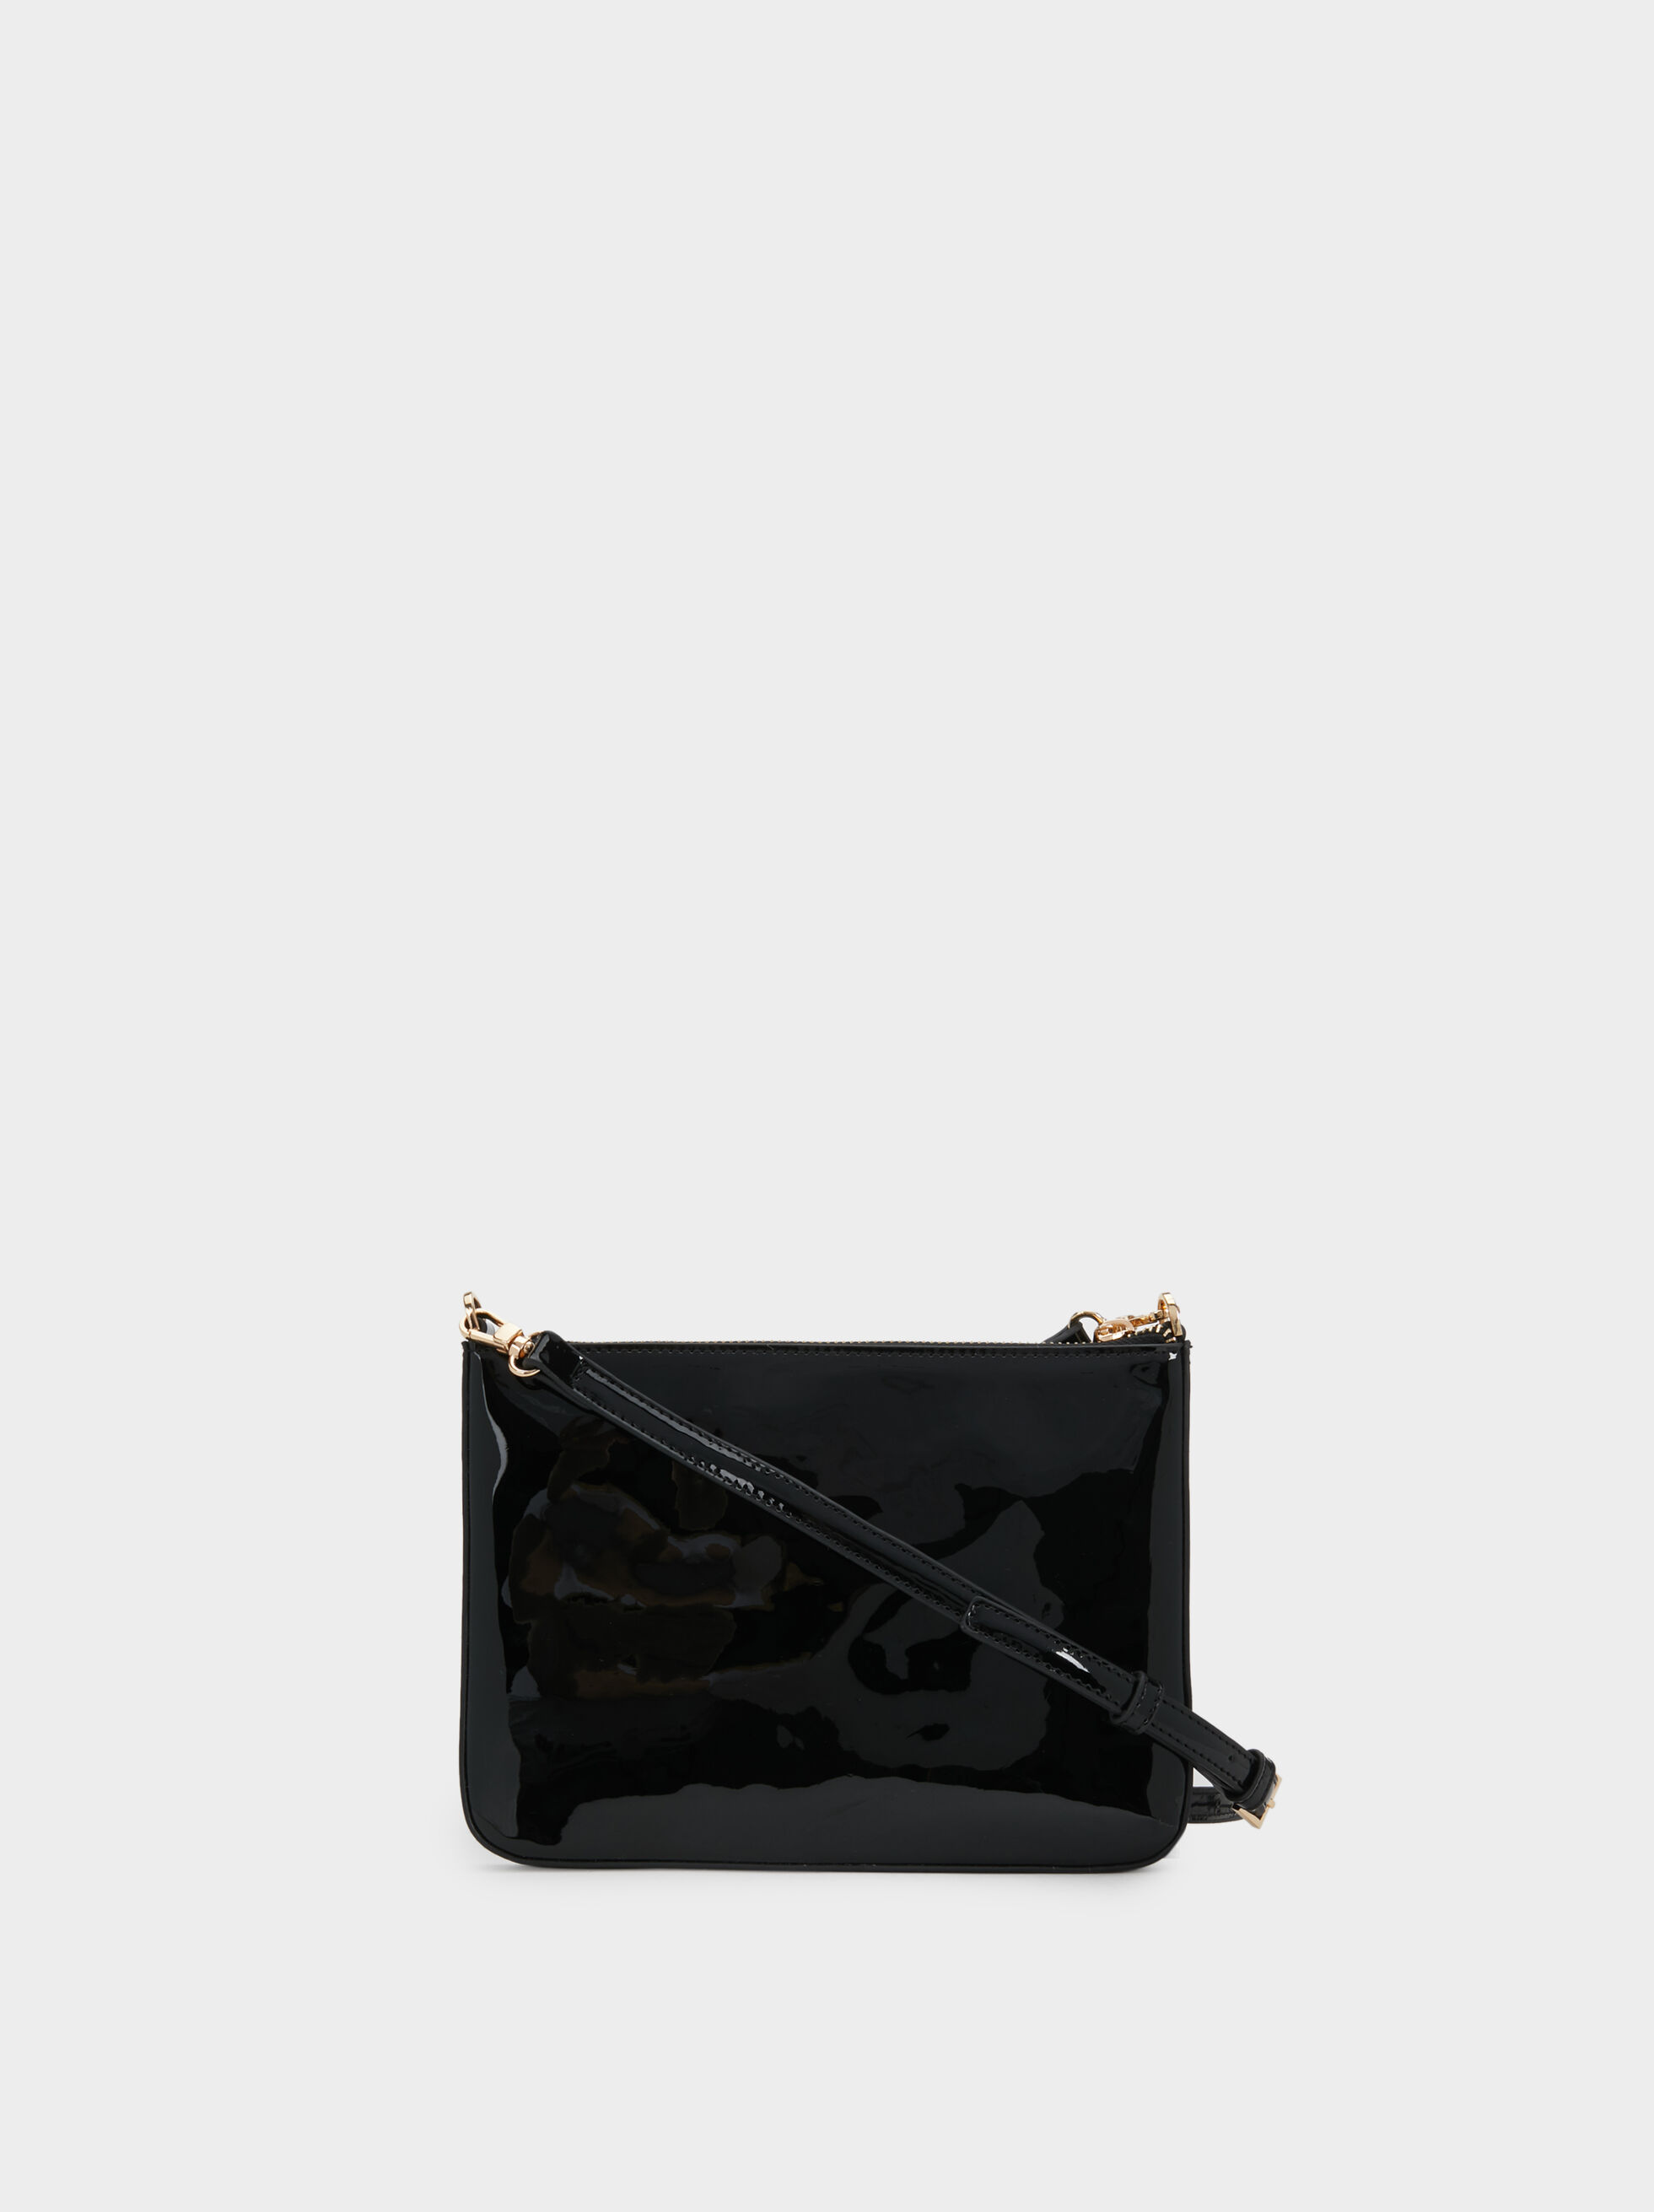 Patent Finish Crossbody Bag, Black, hi-res